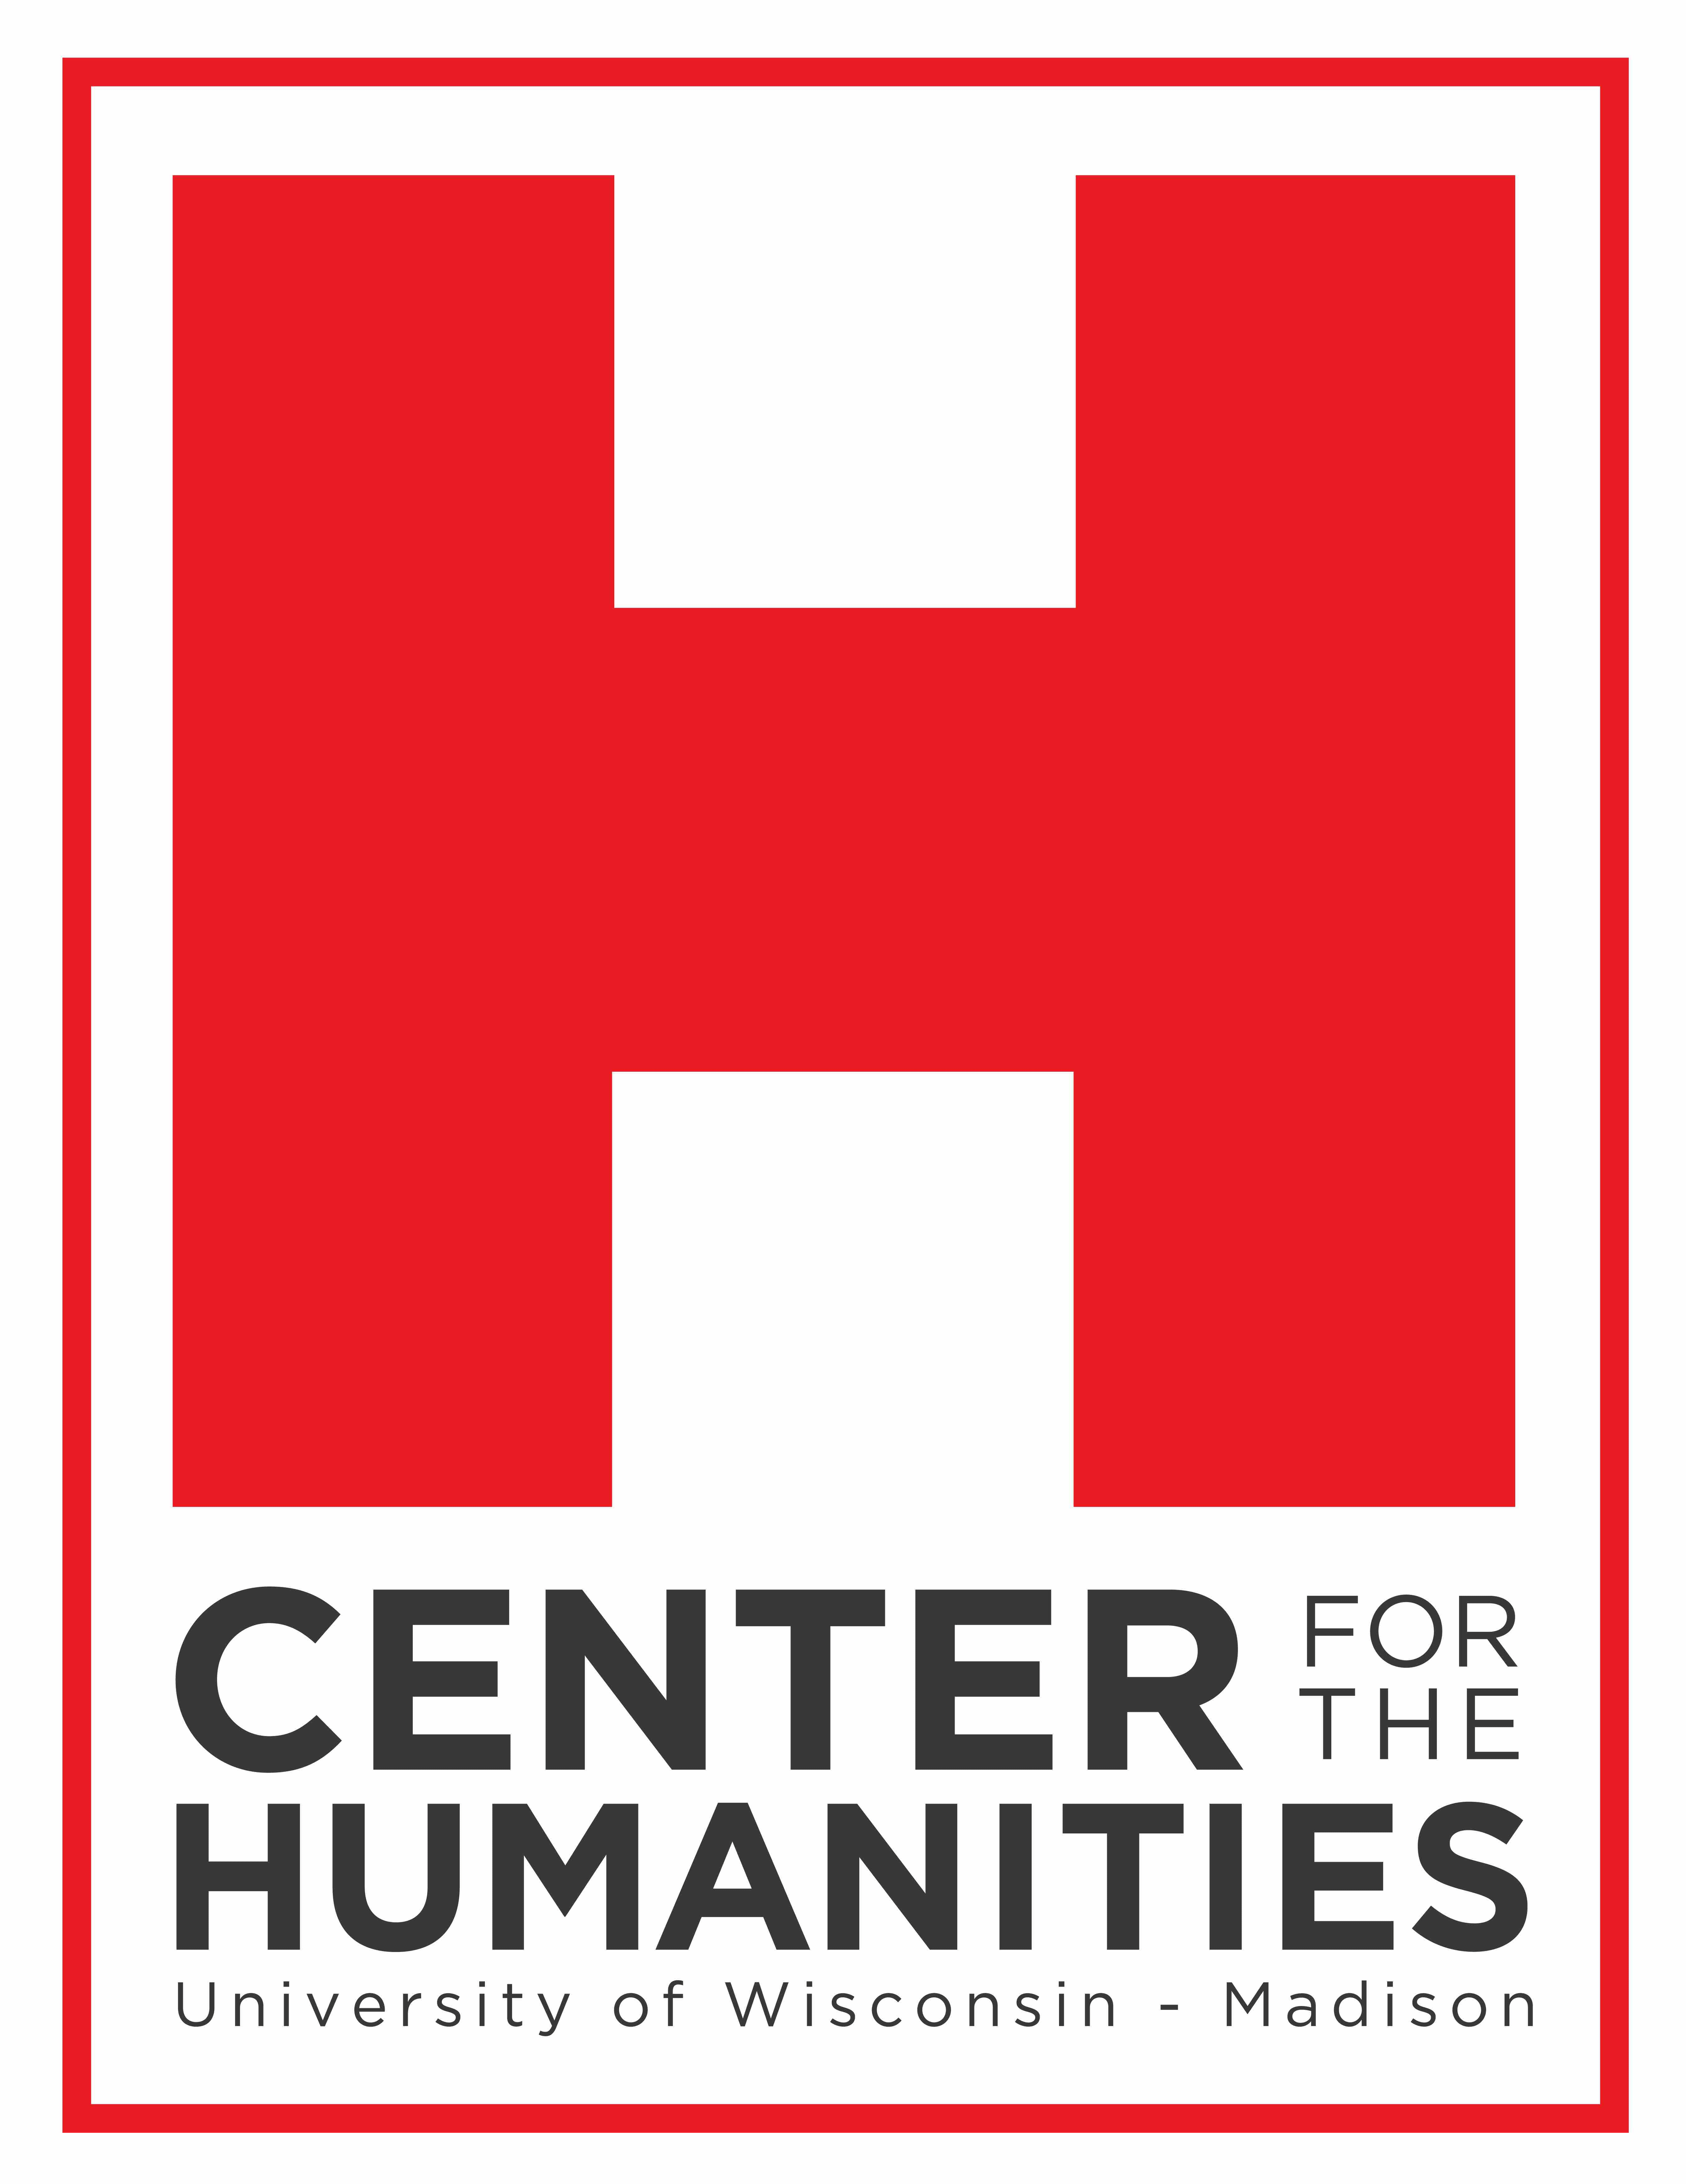 Center For the Humanities Logo